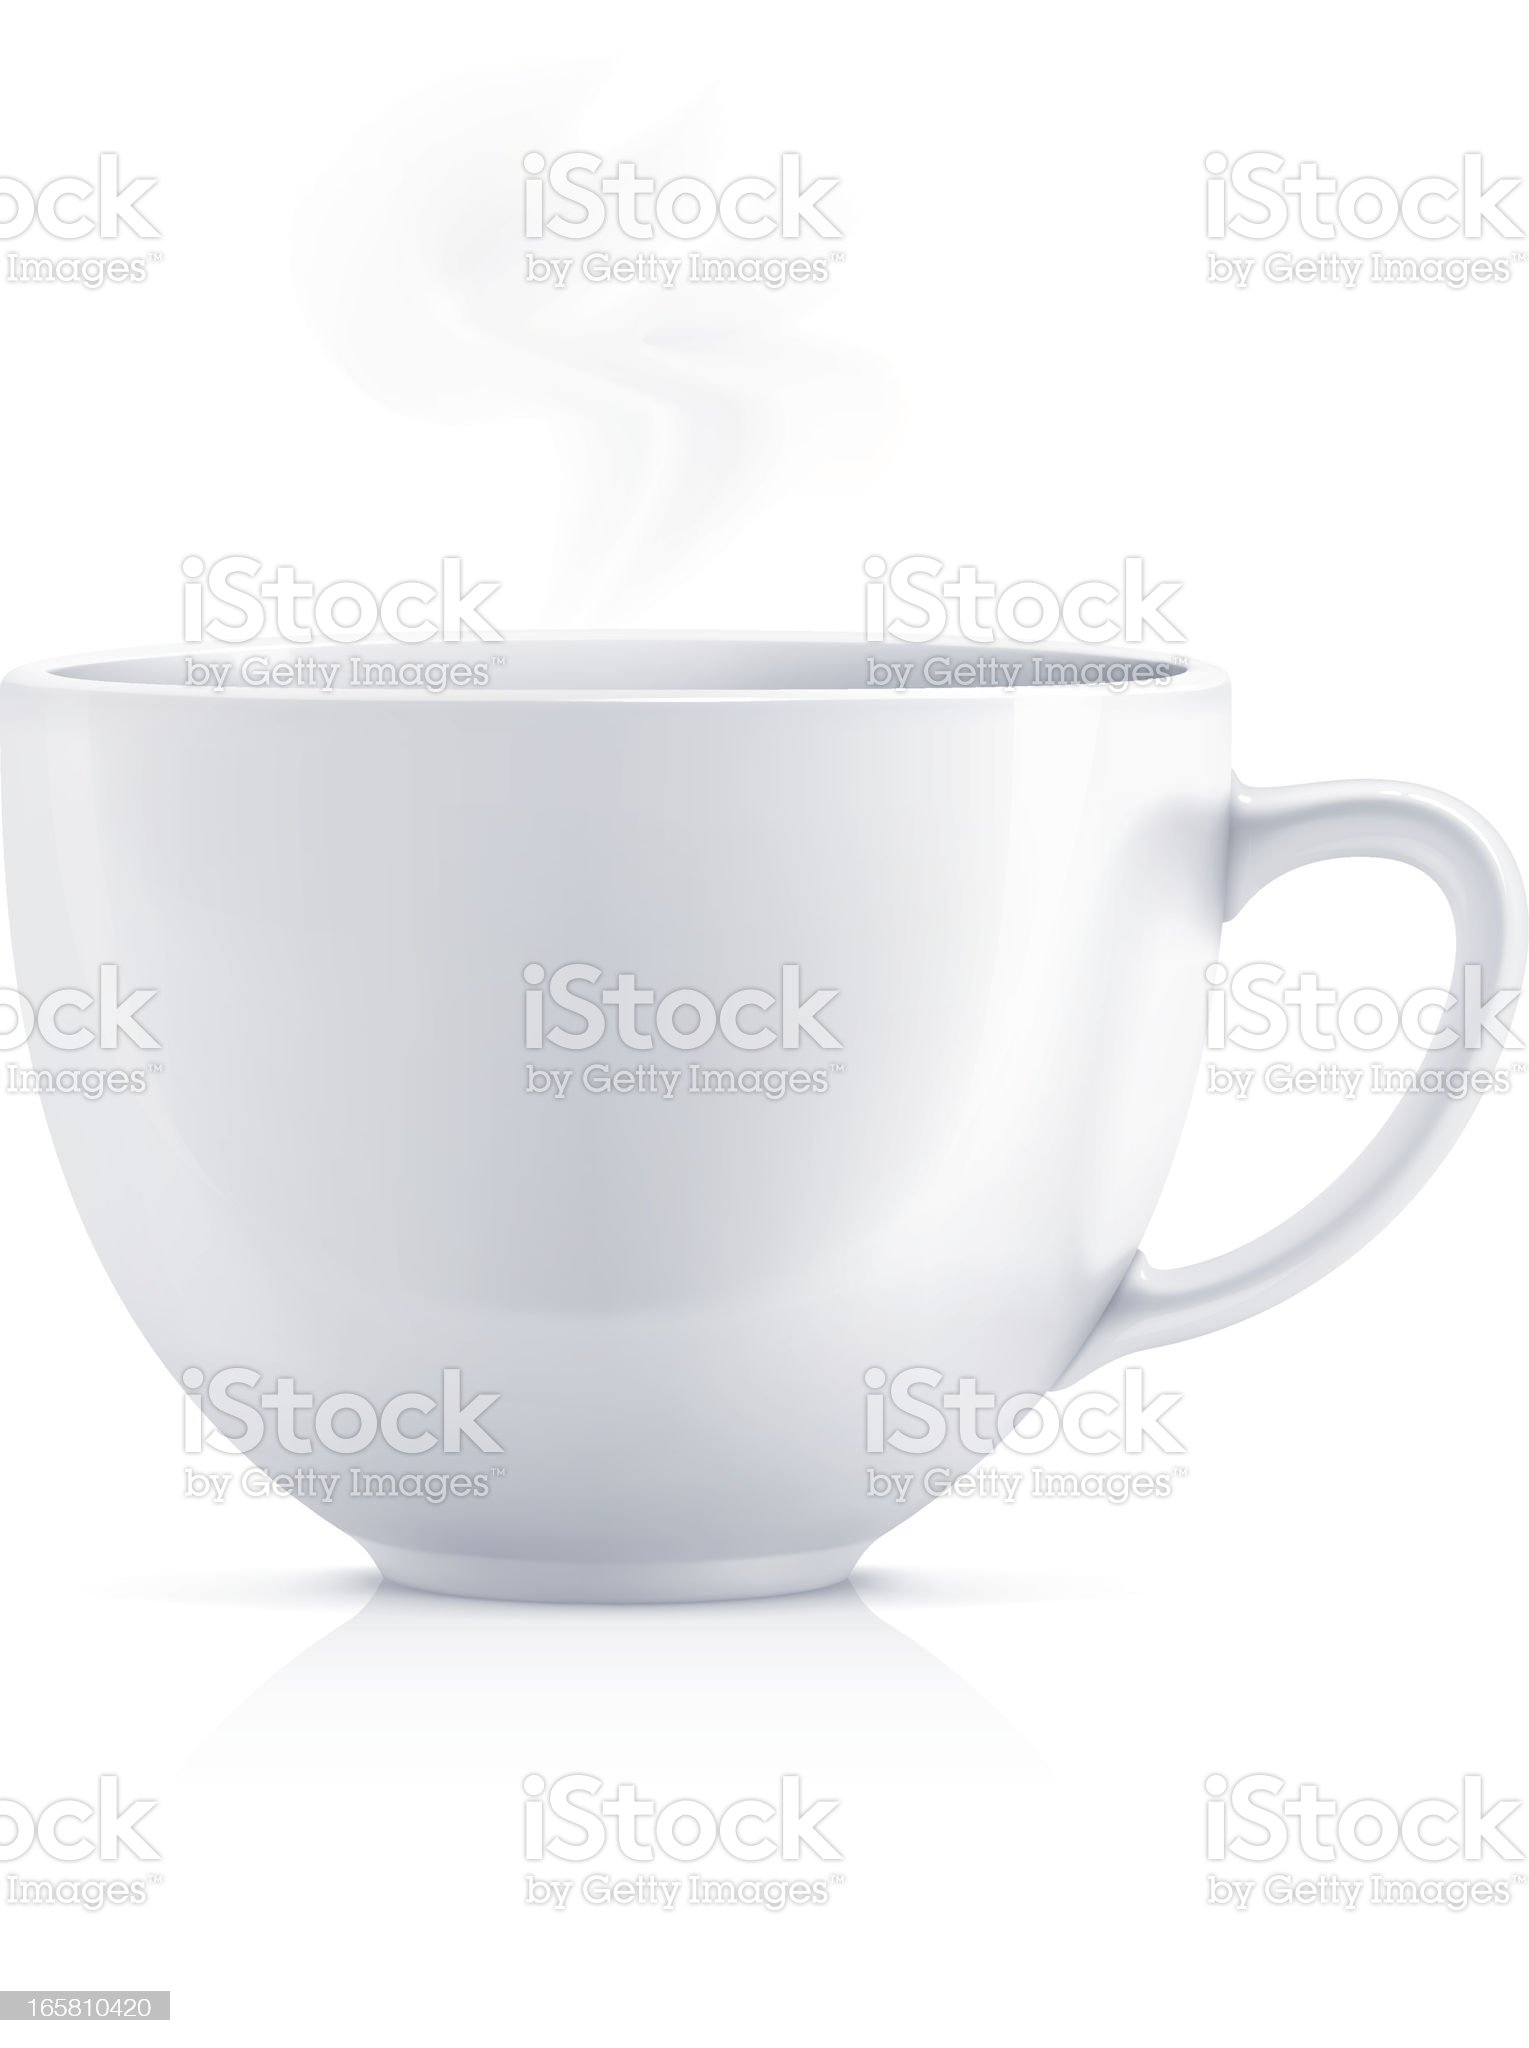 White teacup royalty-free stock vector art